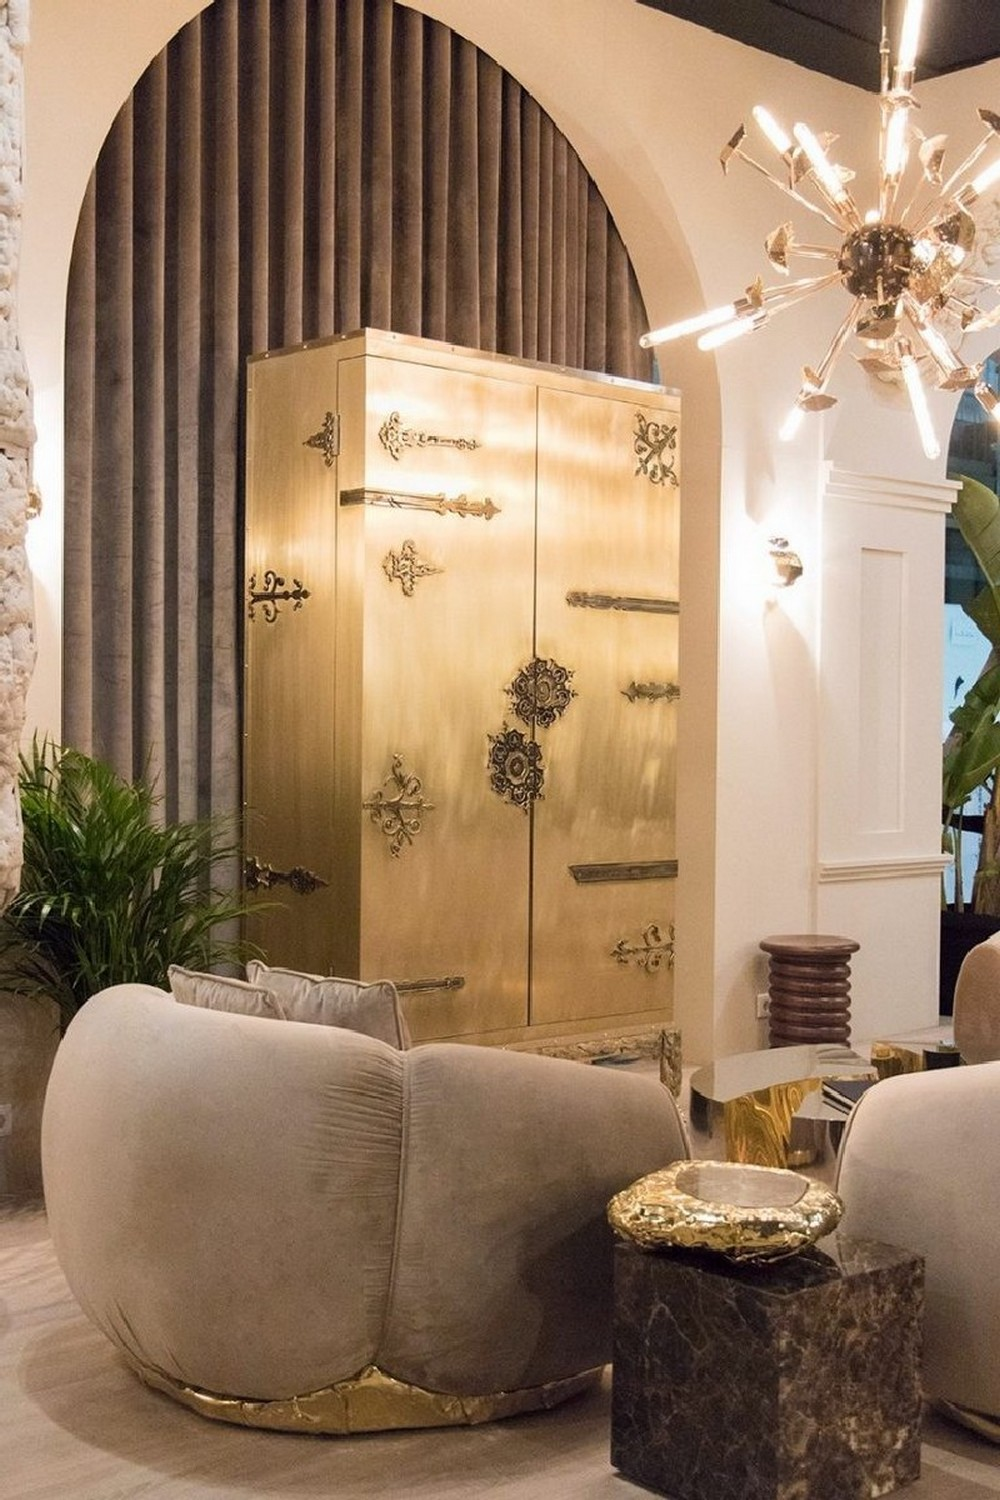 CovetED Shows The New Trendy Furniture Designs For Your Home Decor Trendy Furniture Designs CovetED Shows The New Trendy Furniture Designs For Your Home Decor CovetED Shows The New Trendy Furniture Designs For Your Home Decor 7